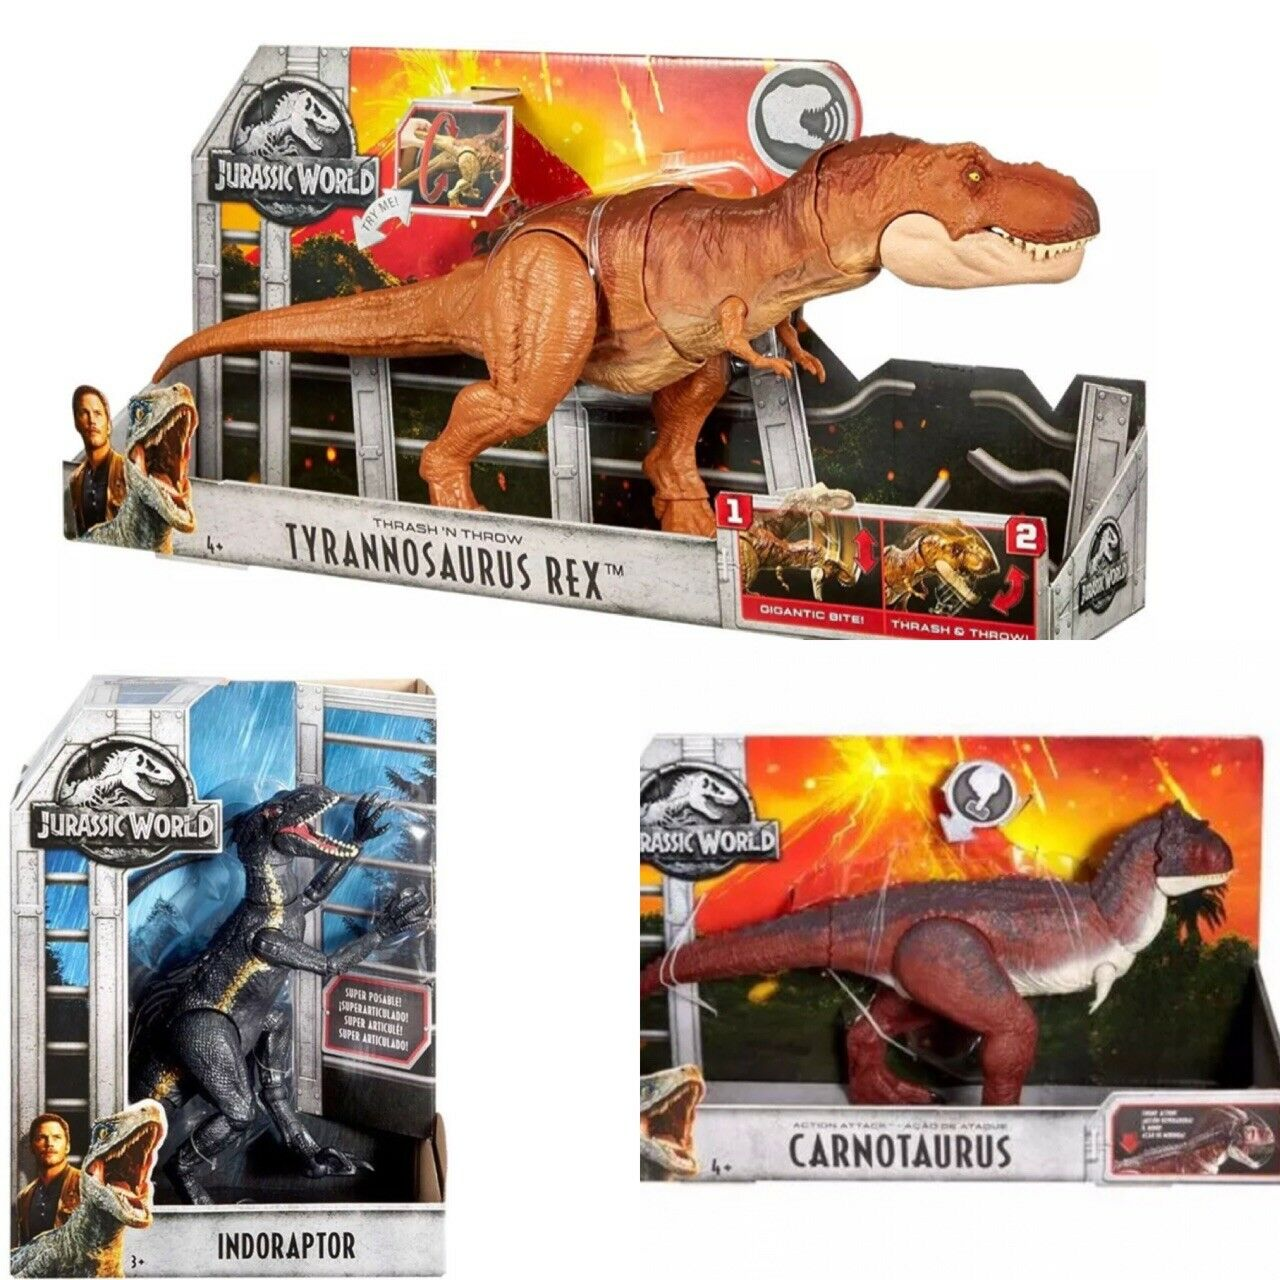 Jurassic World Thrash 'n Throw Tyrannosaurus T-Rex ,indoraptor & carnotaurus Lot